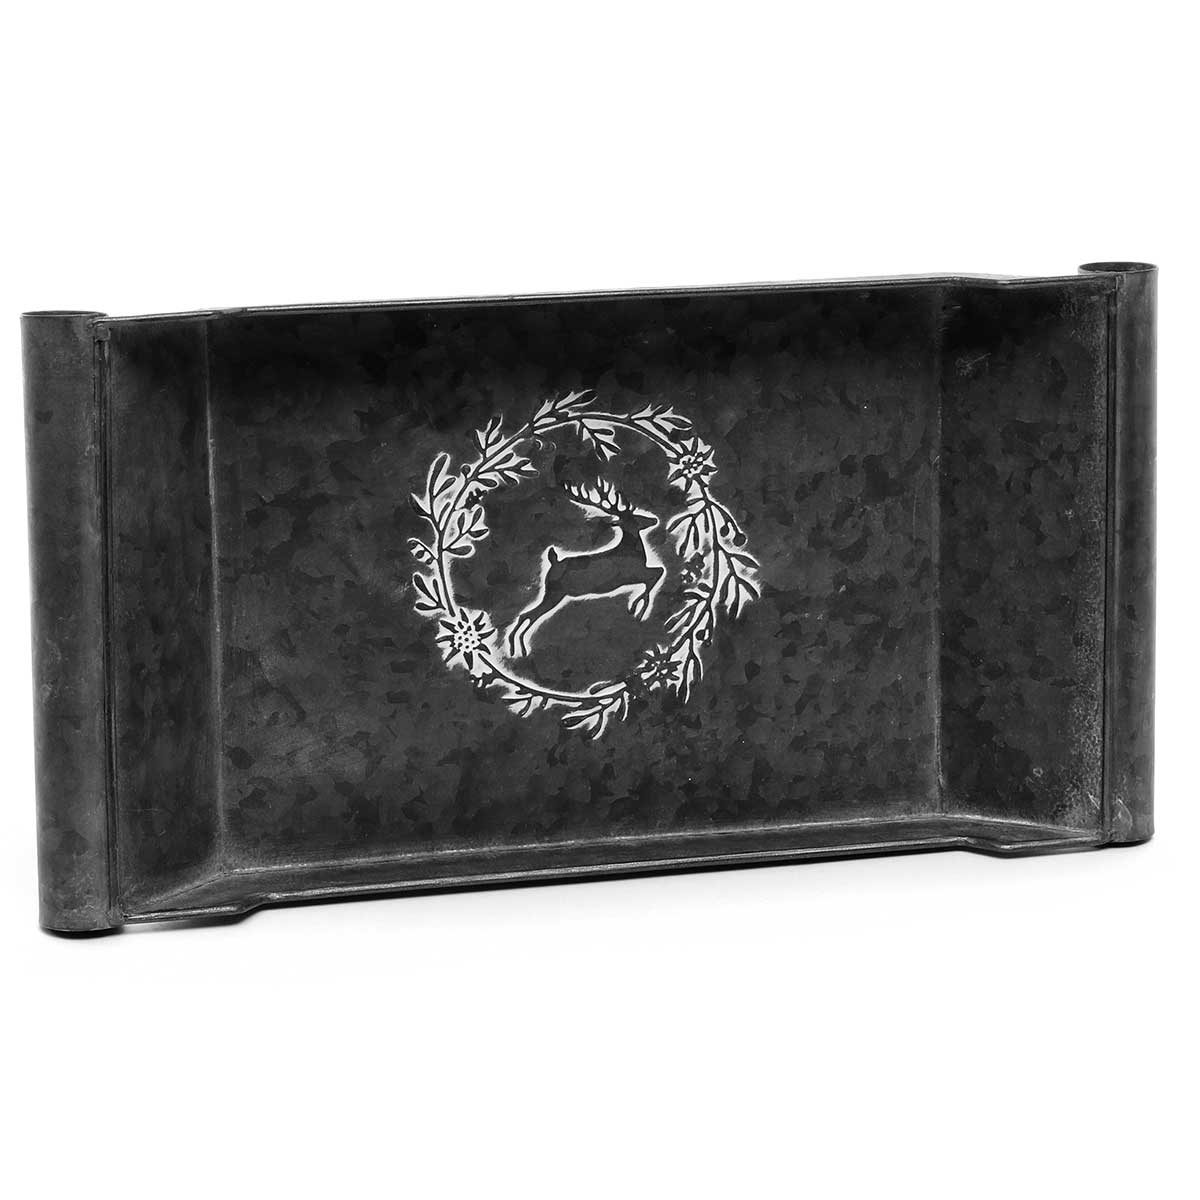 "METAL TRAY EMBOSSED WITH WREATH/DEER 17""X8.5""X2"""